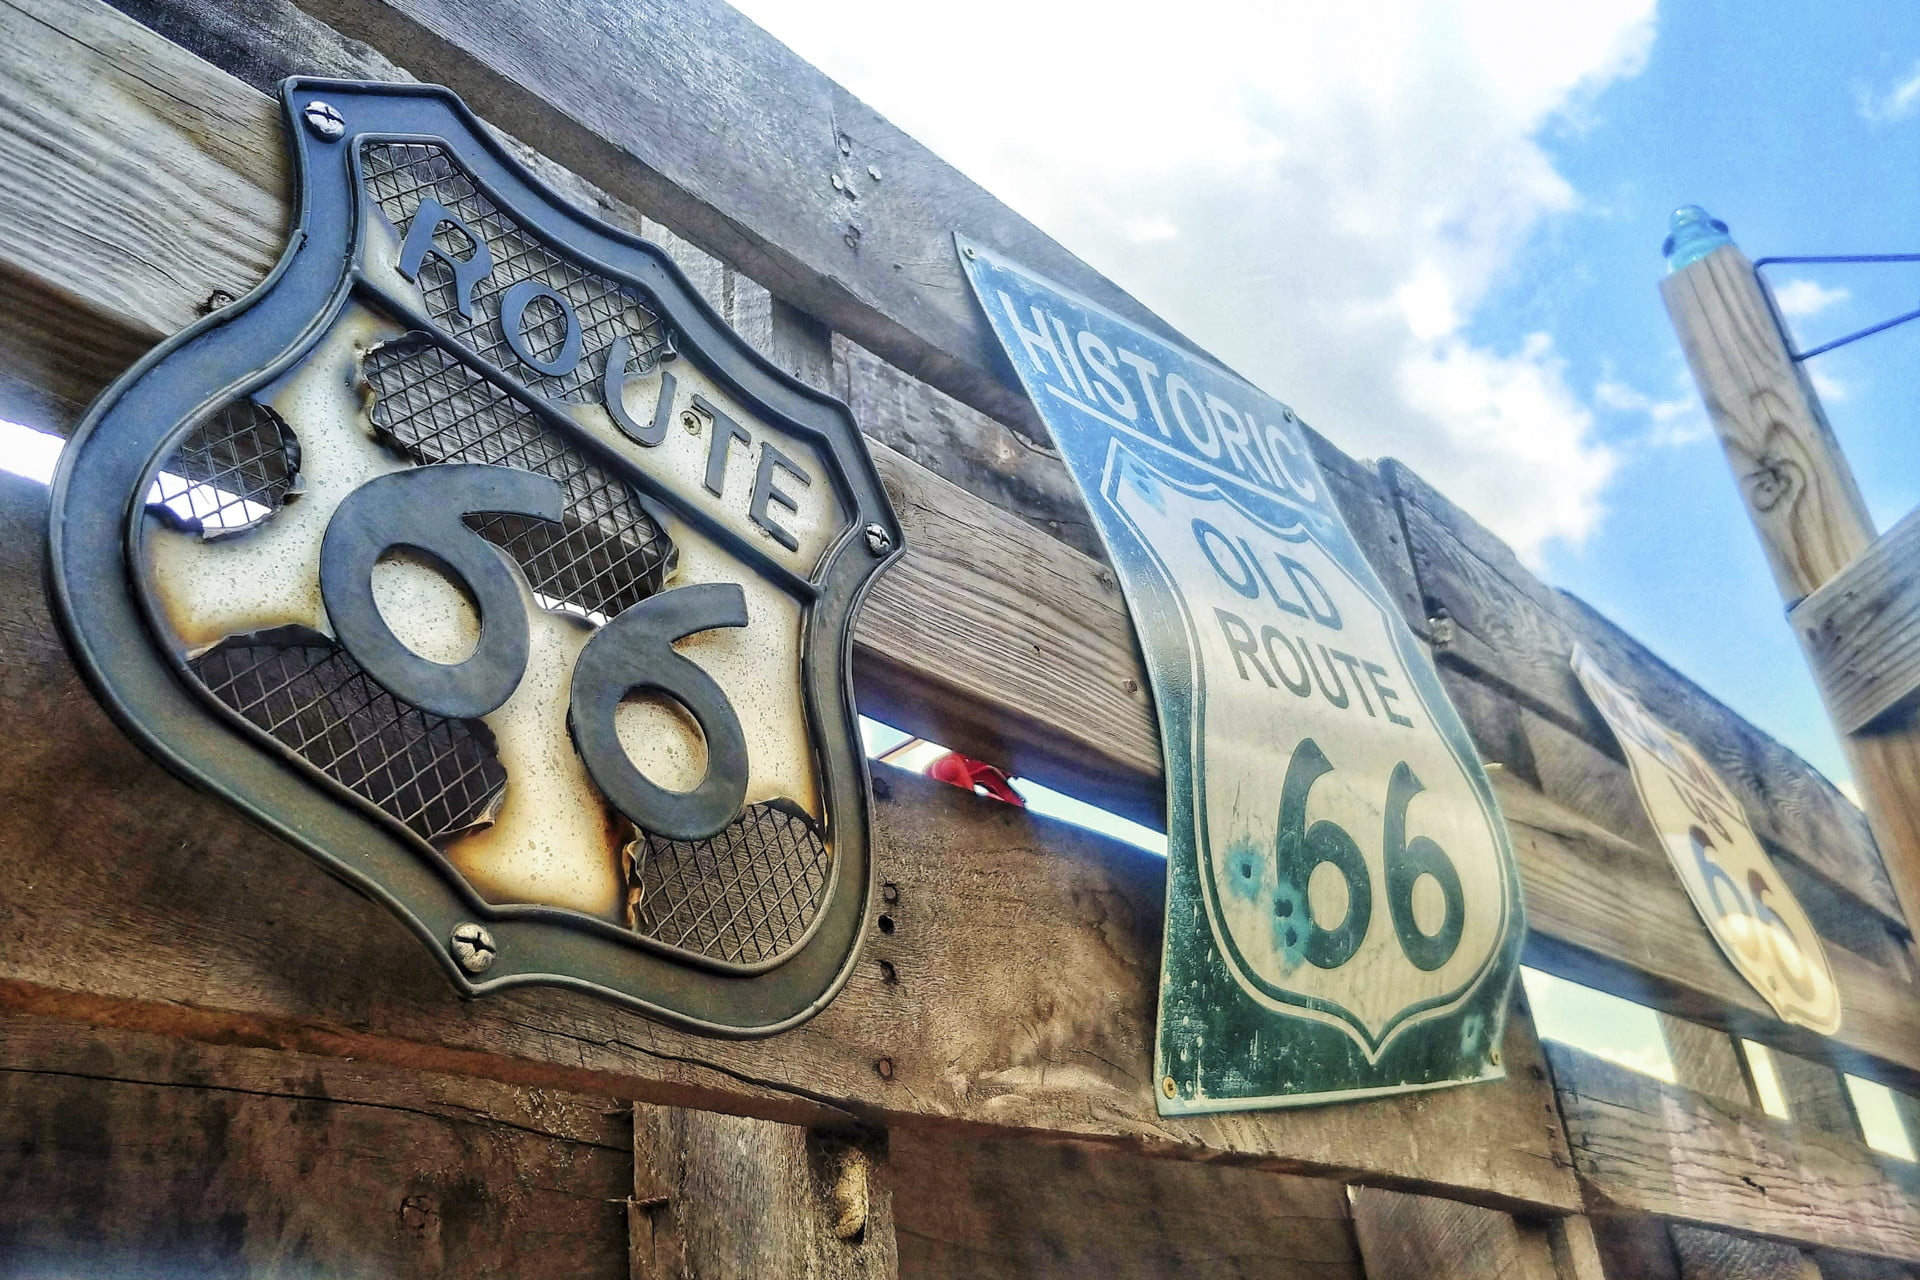 Driving the 2019 Corvette on Route 66